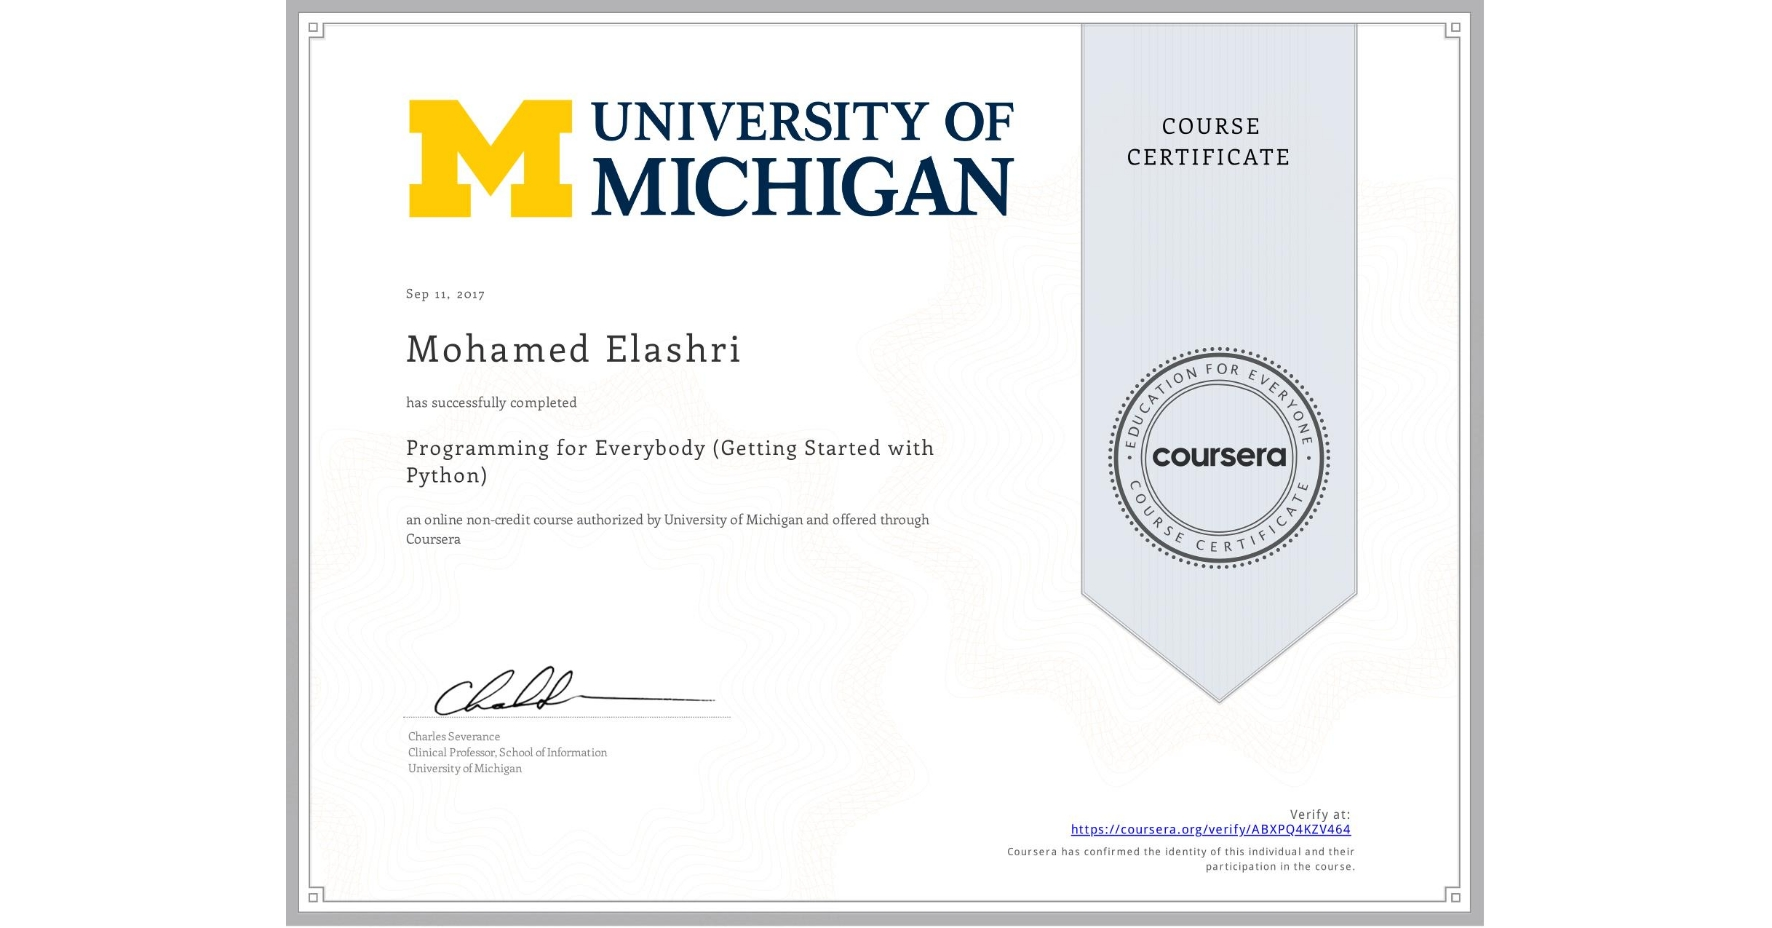 View certificate for Mohamed Elashri, Programming for Everybody (Getting Started with Python), an online non-credit course authorized by University of Michigan and offered through Coursera